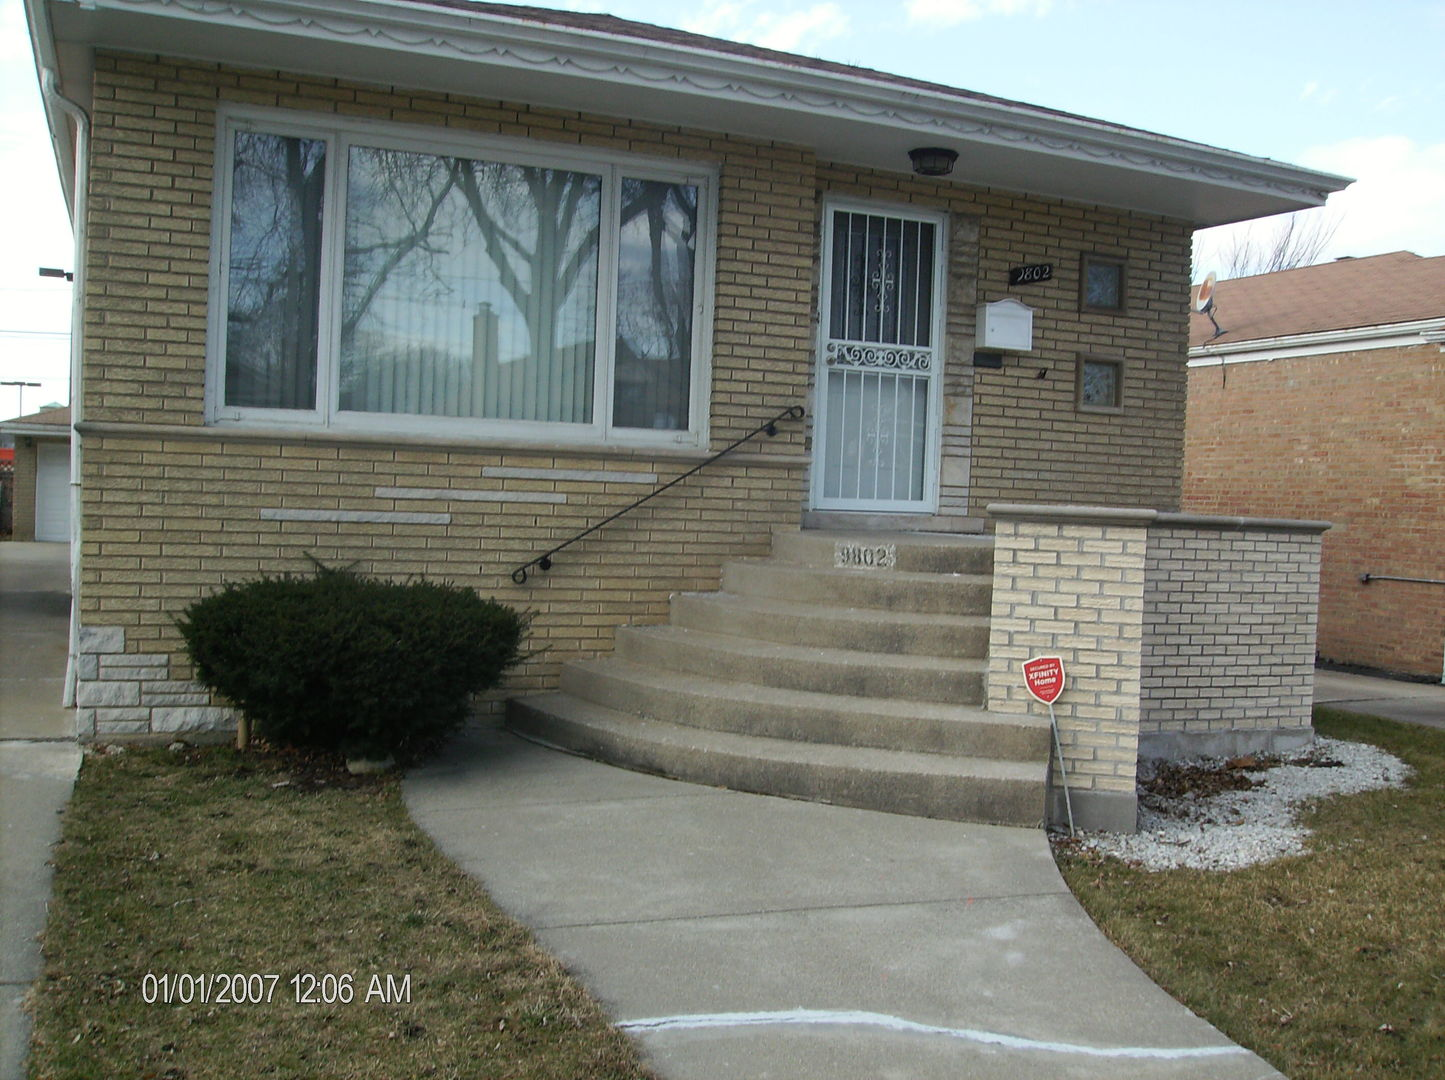 9802 South Claremont Avenue, Beverly-Chicago in Cook County, IL 60643 Home for Sale